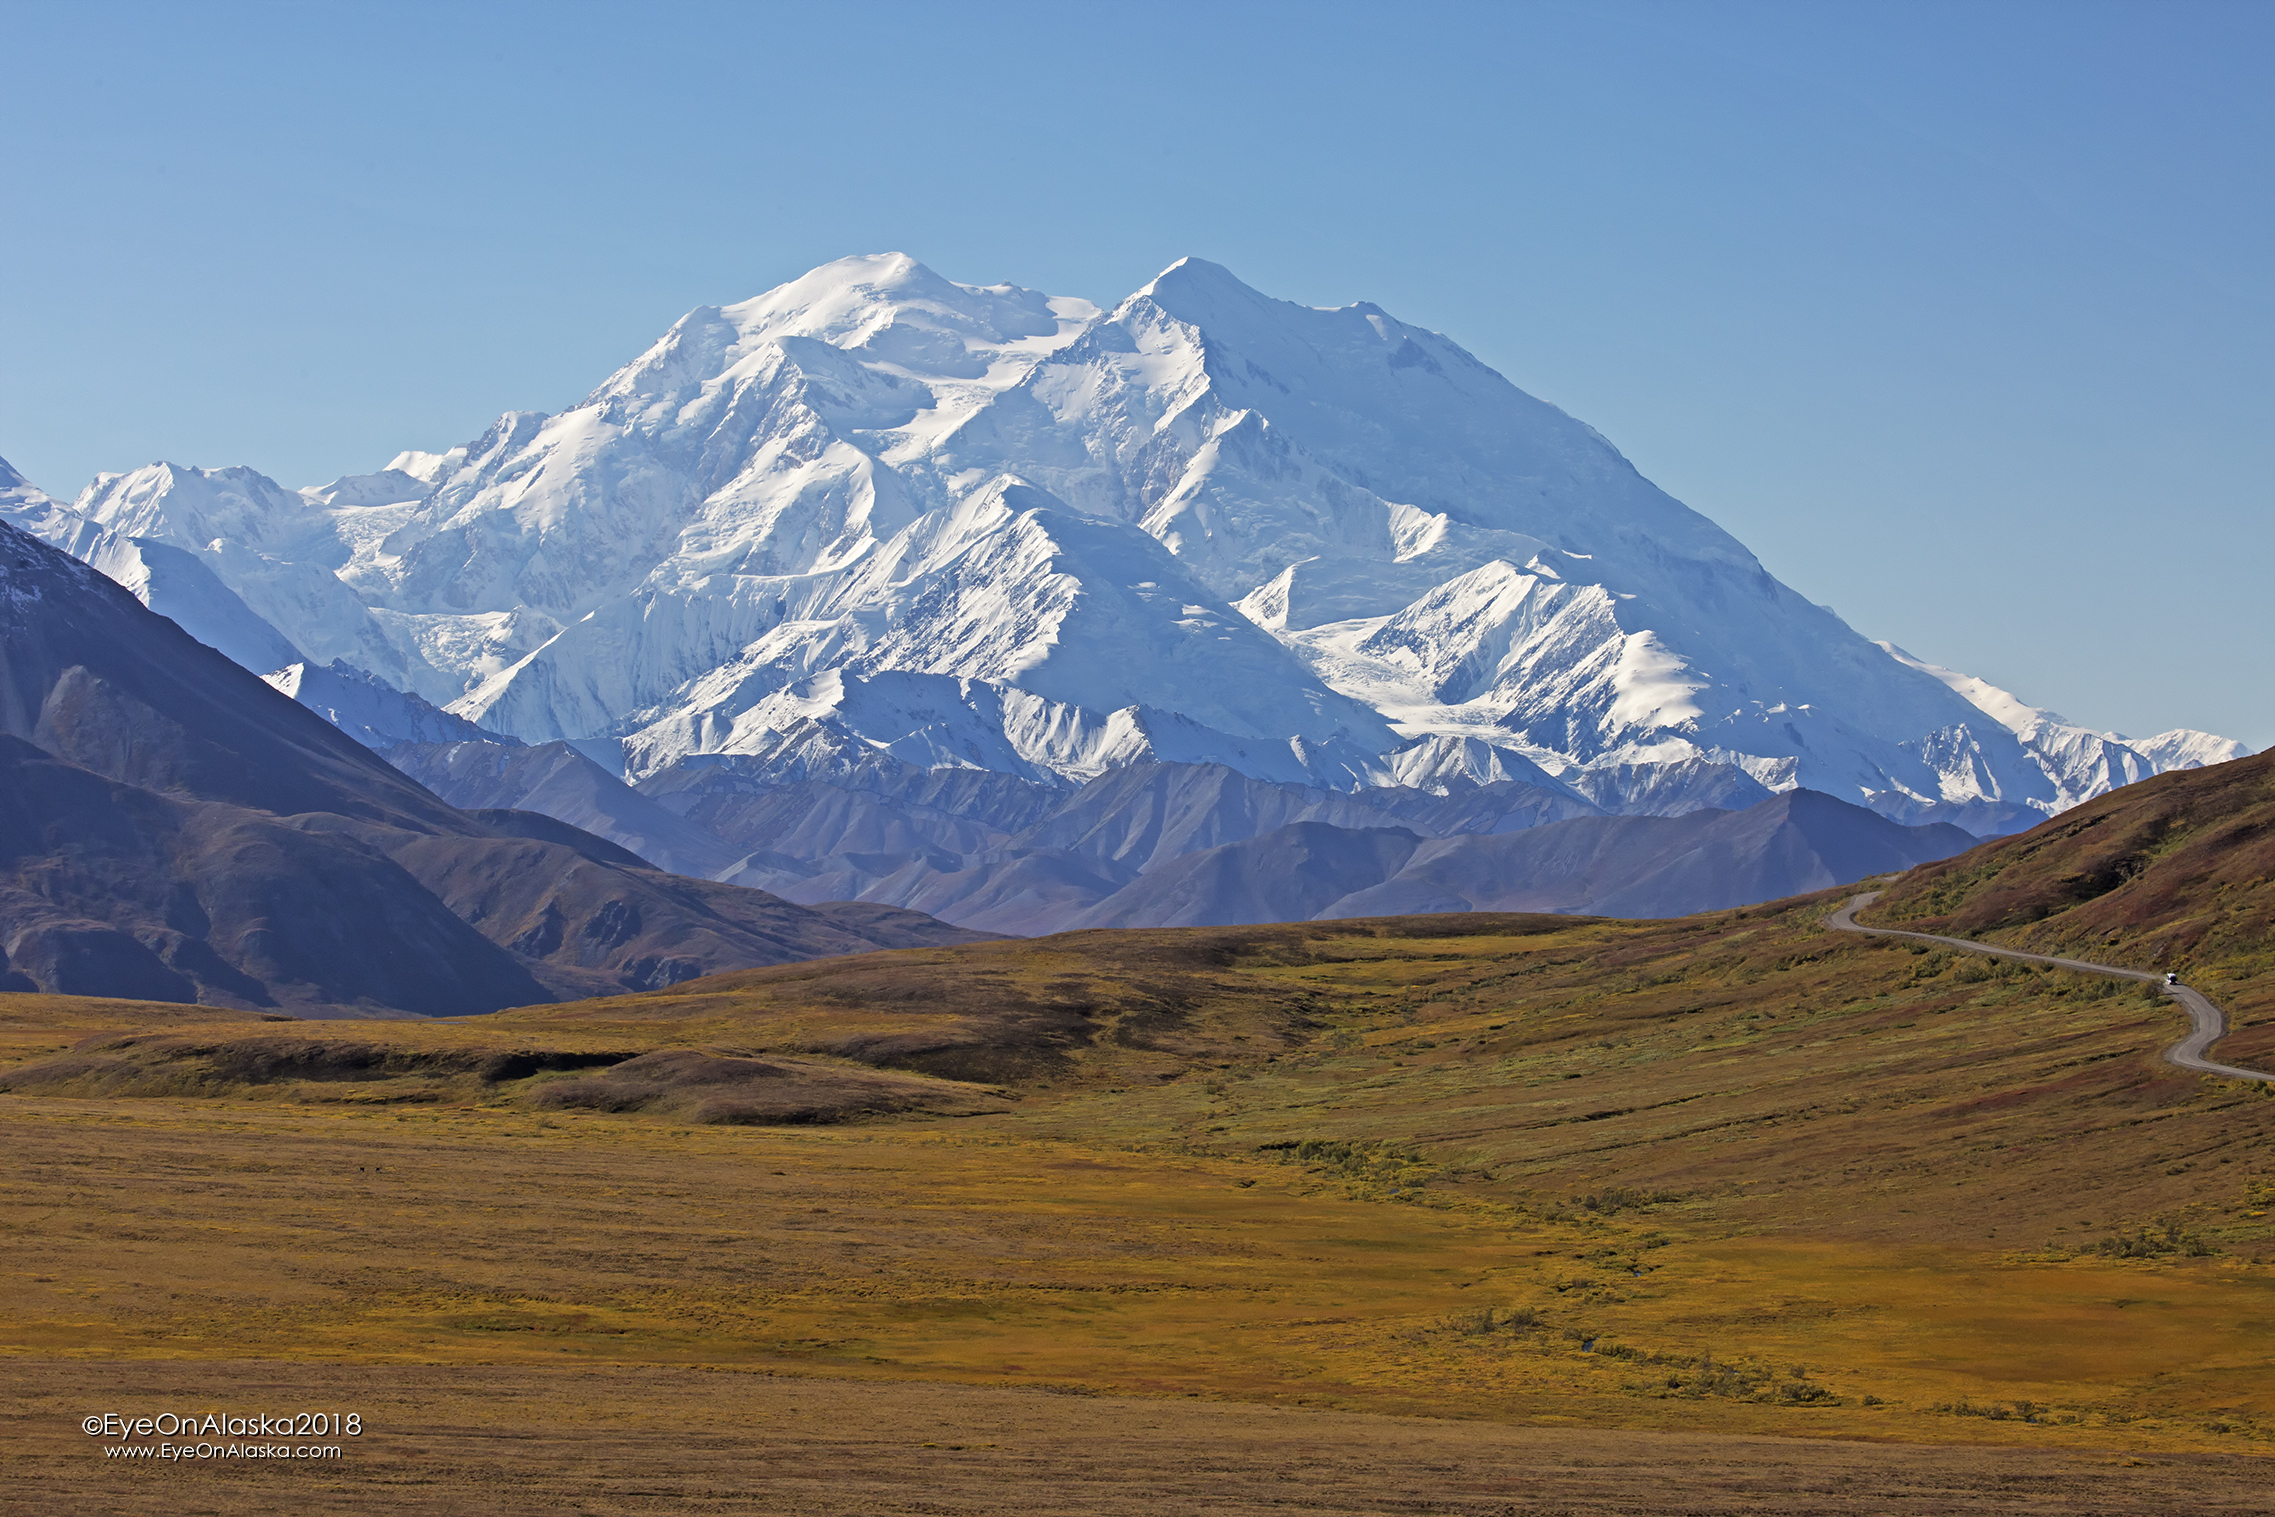 Denali from the Stoney Dome overlook.